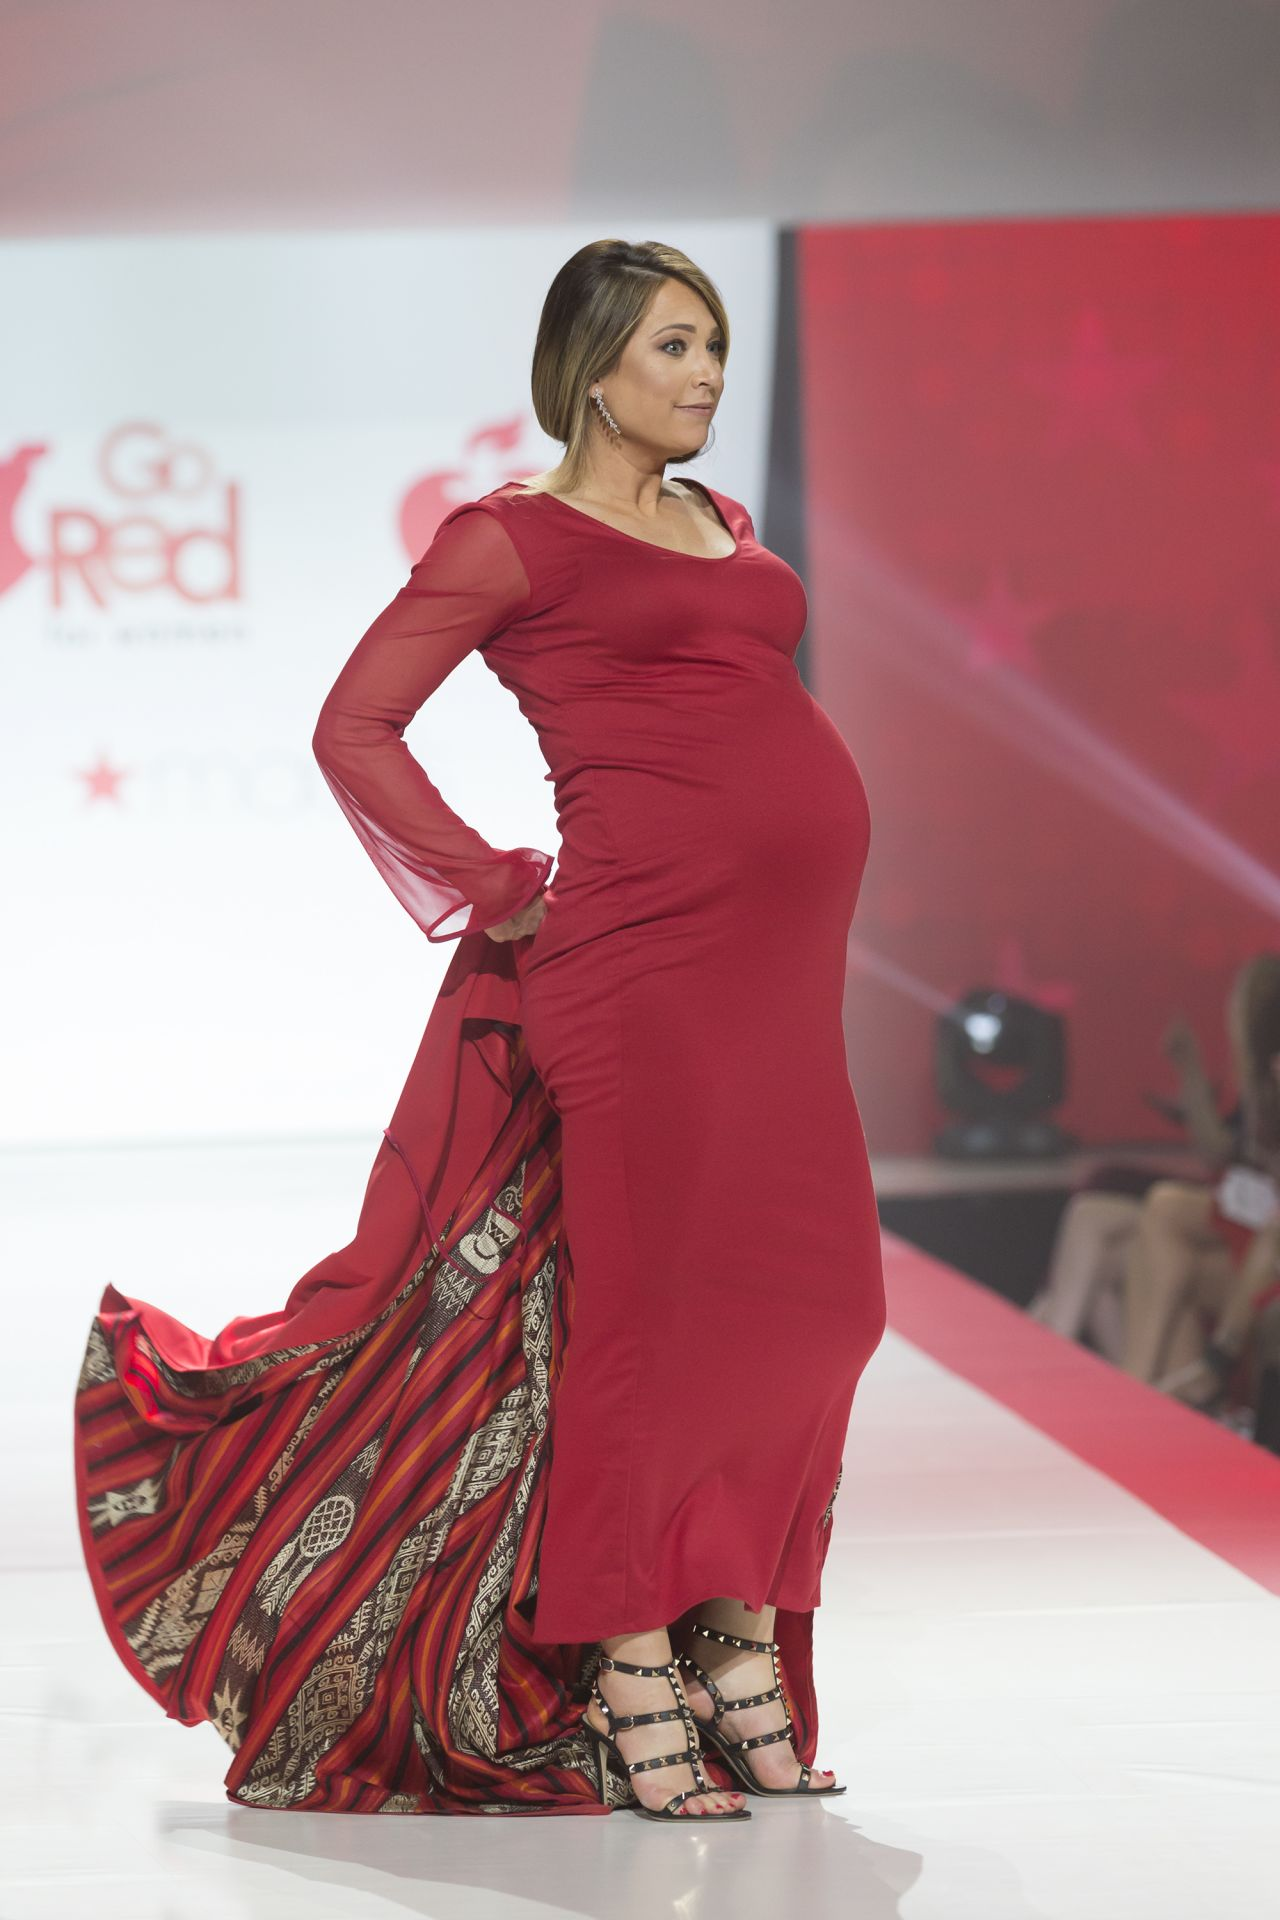 Go Red For Women Red Dress Collection 2017 Fashion Show